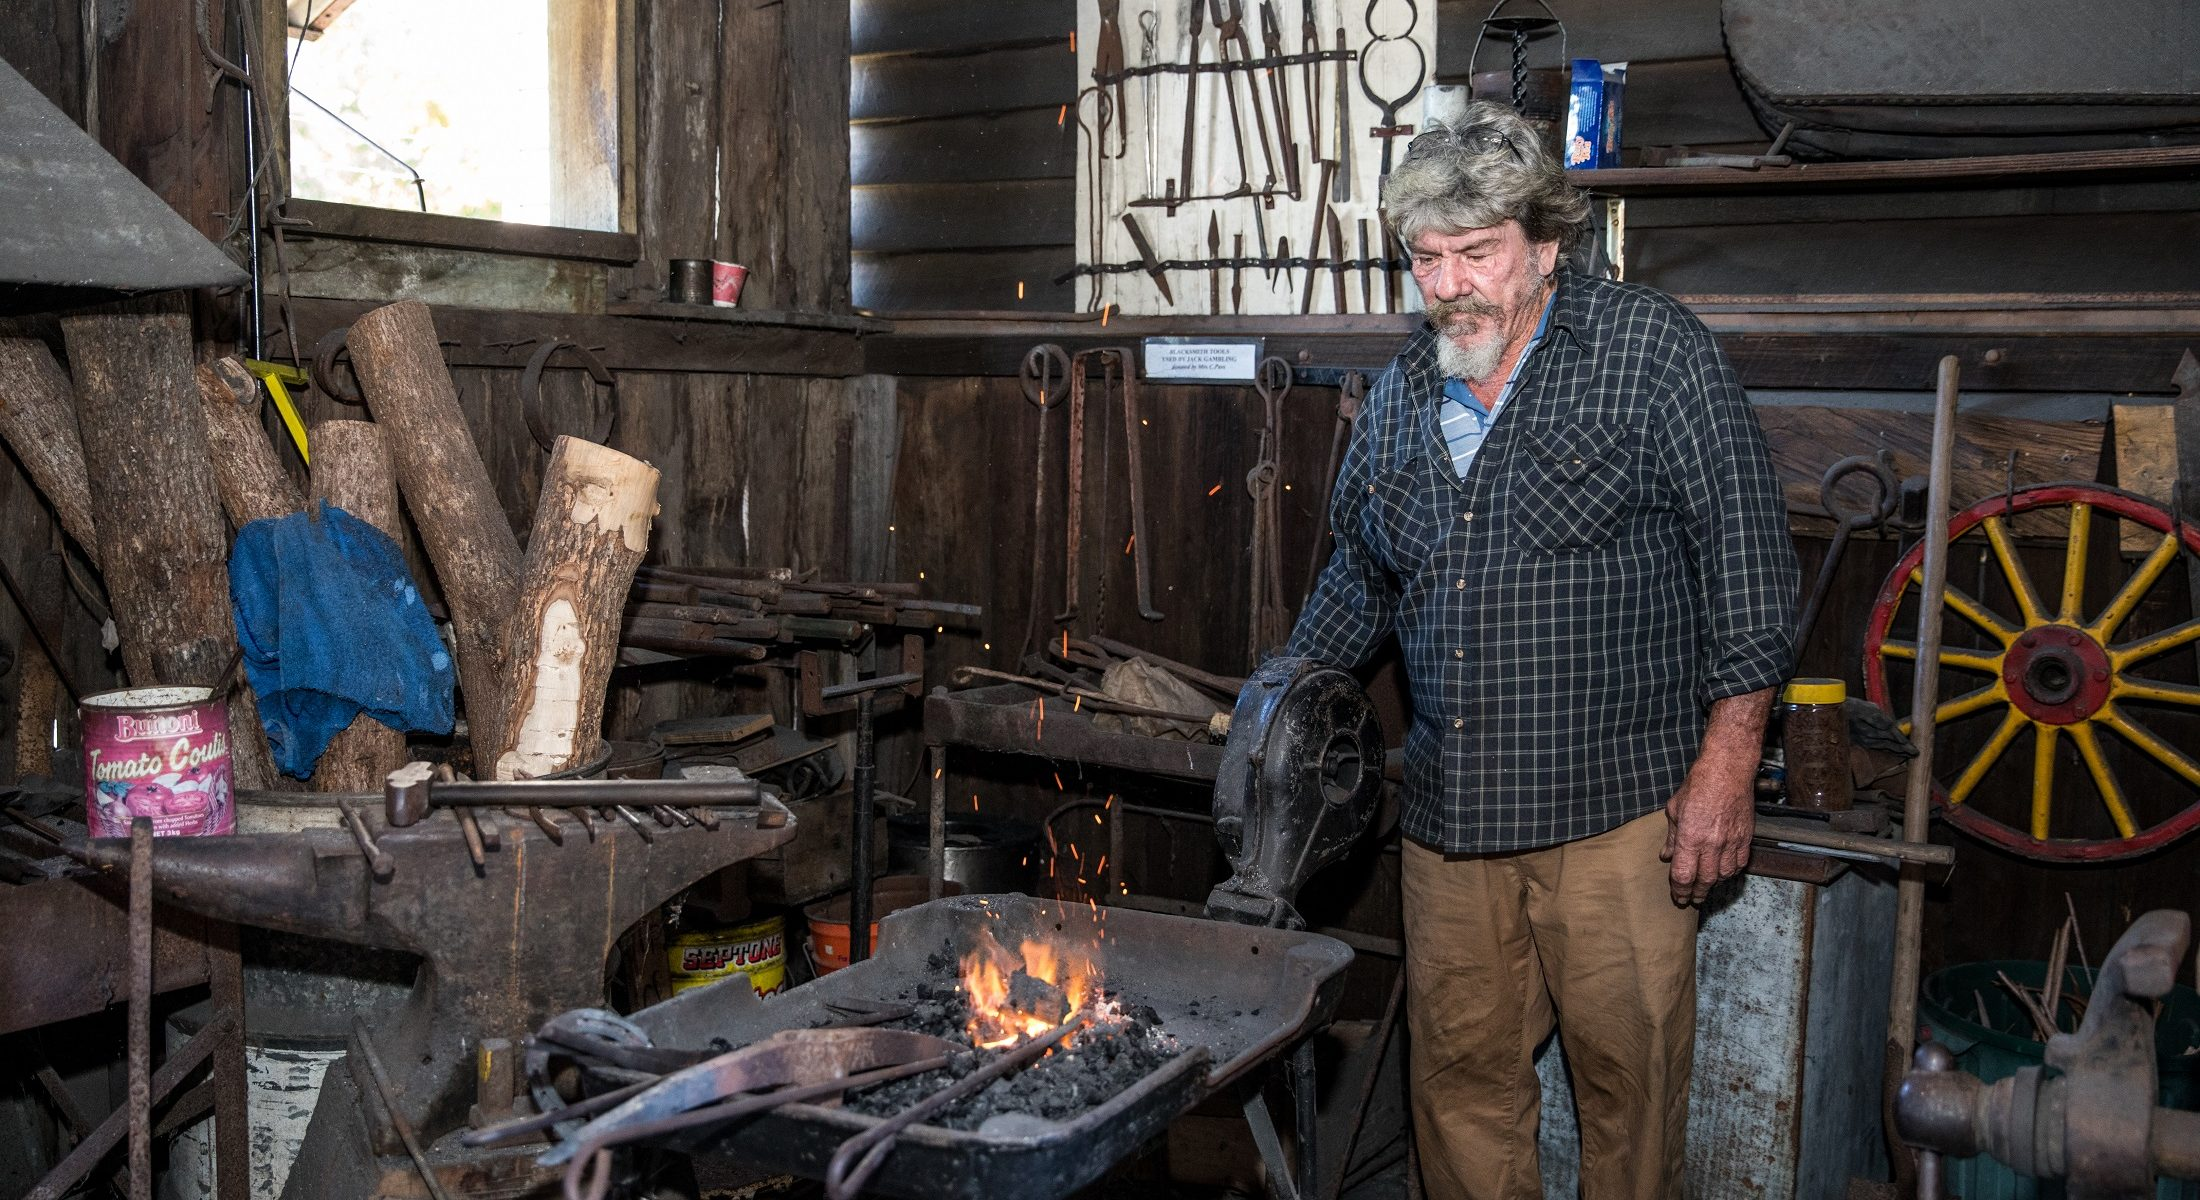 Samford Museum Blacksmith Queensland Moreton Bay Region Australia